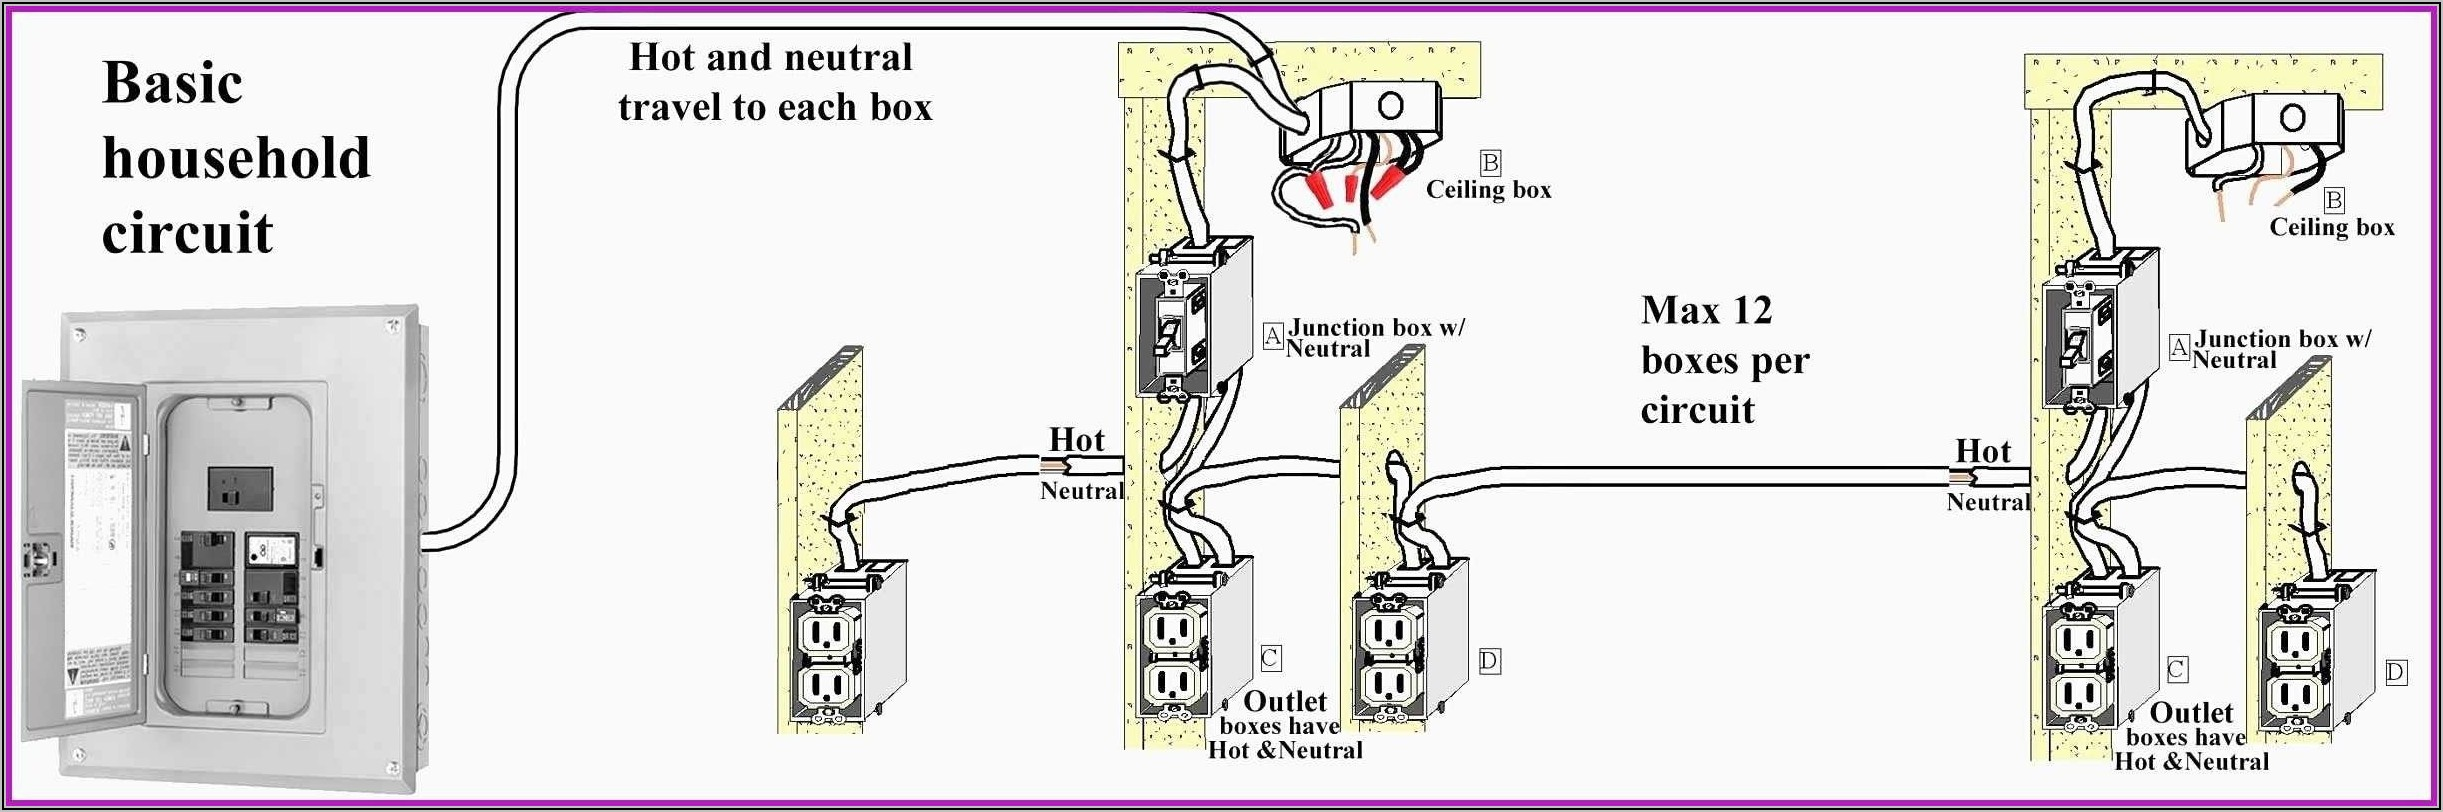 Light Switch Wiring Diagram South Africa